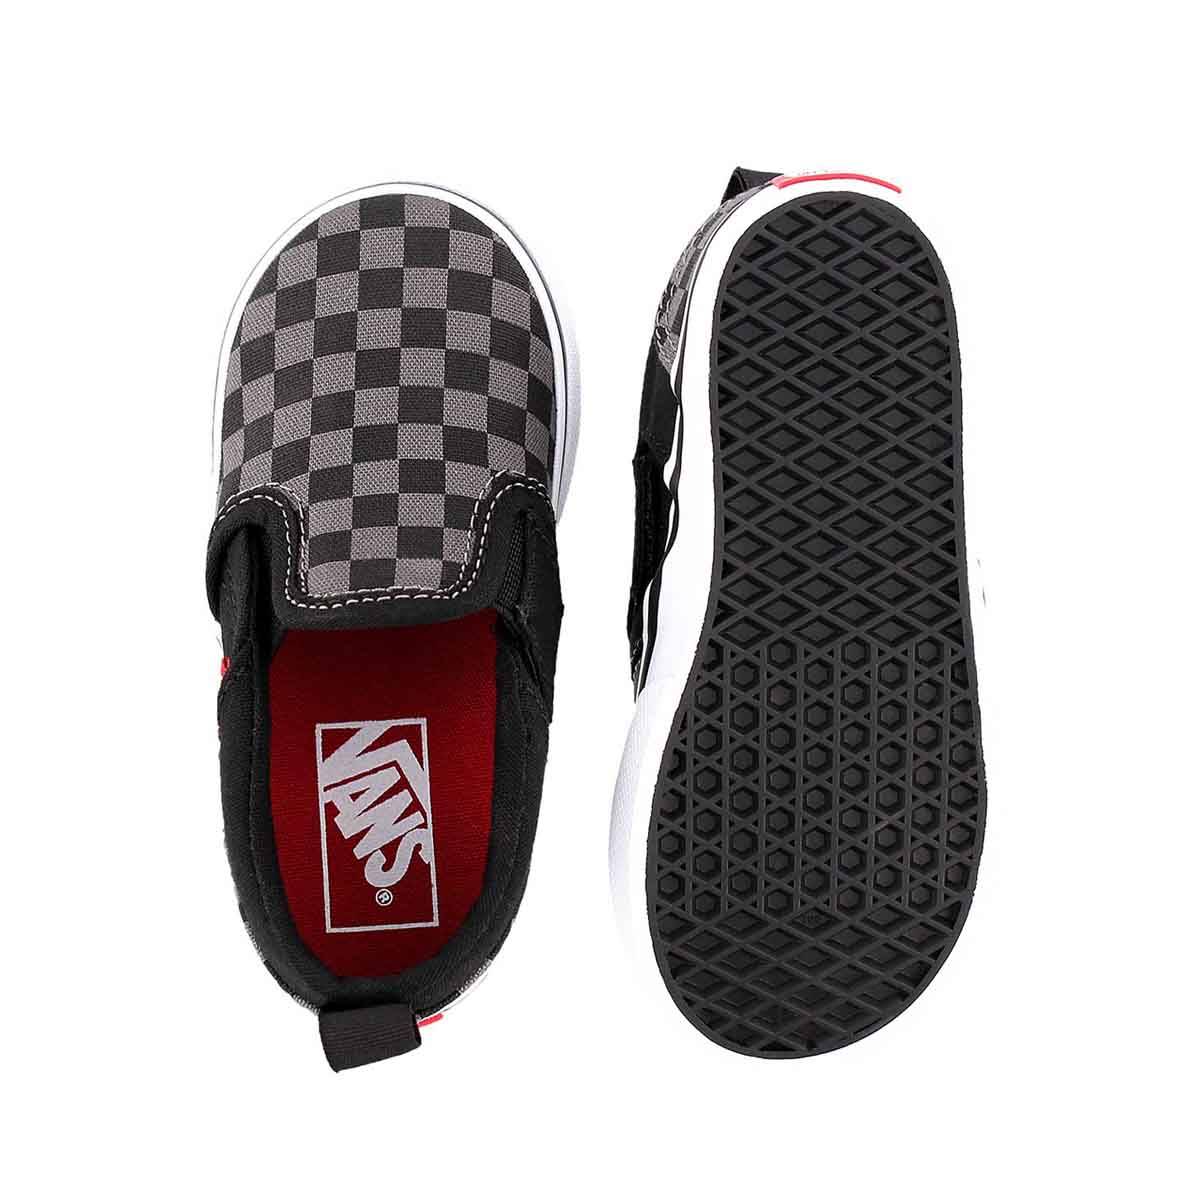 Infs-b Asher blk checkered slipon snkr